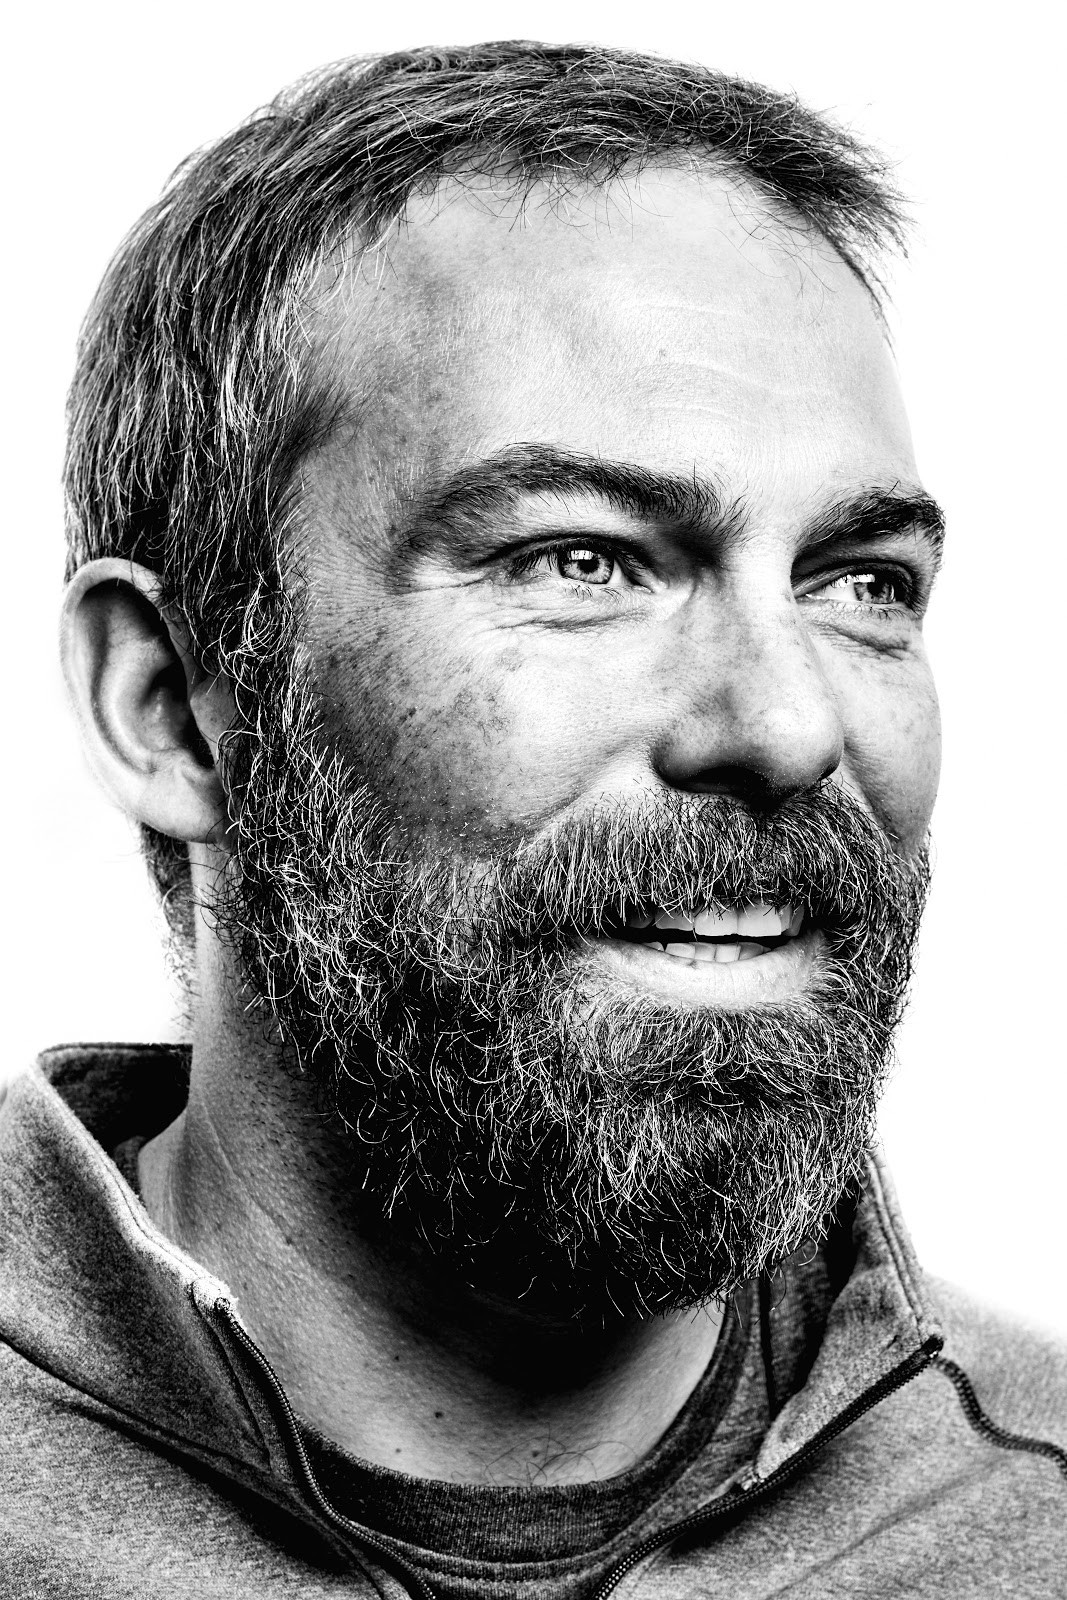 James Rogers, The North Face Director of Sustainability